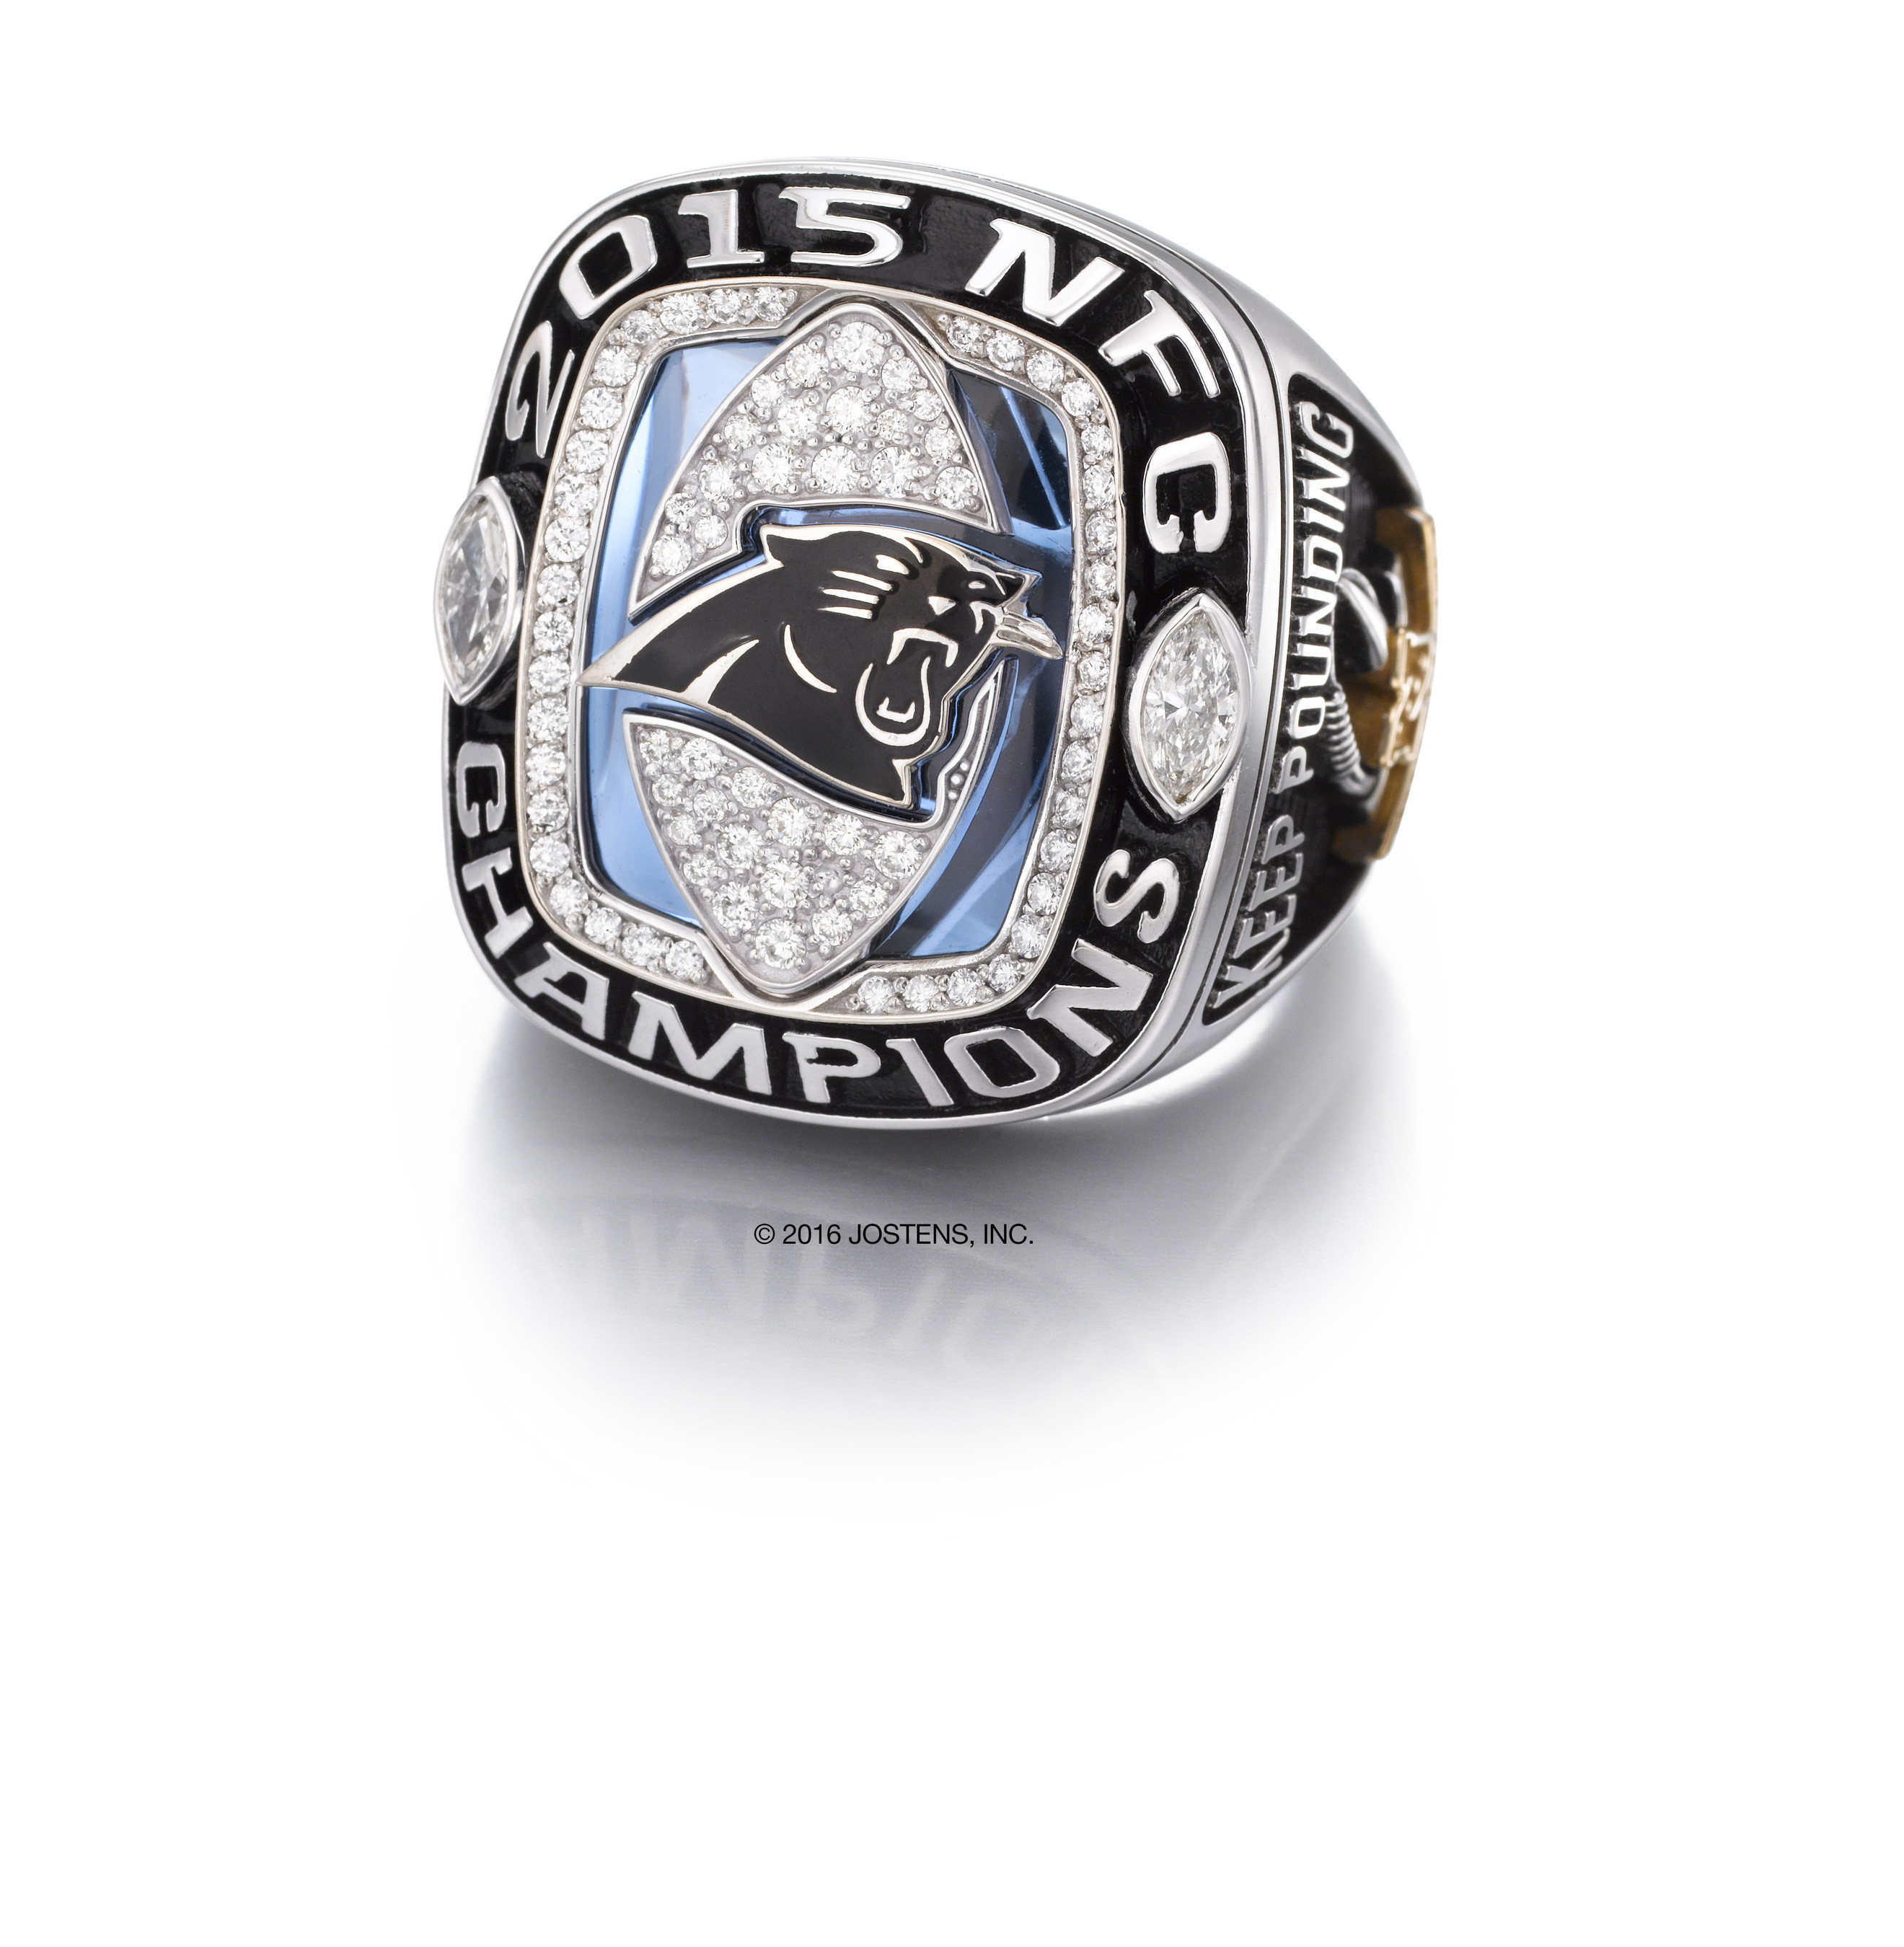 Carolina Panthers 2015 National Football Conference (NFC) Championship ring